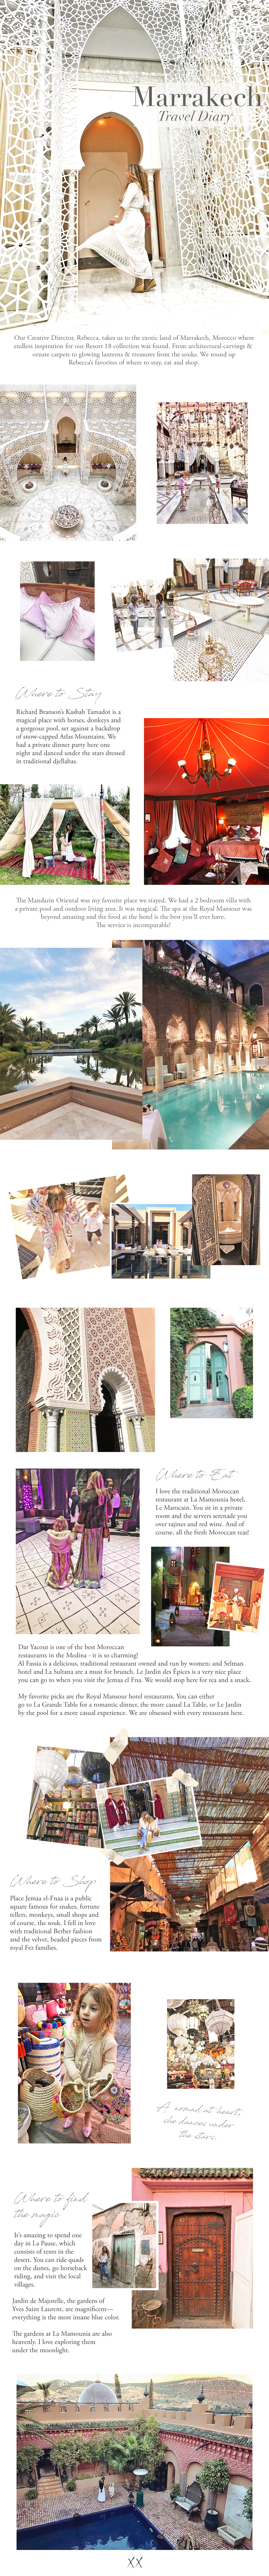 Morocco_Travel-Diary.jpg